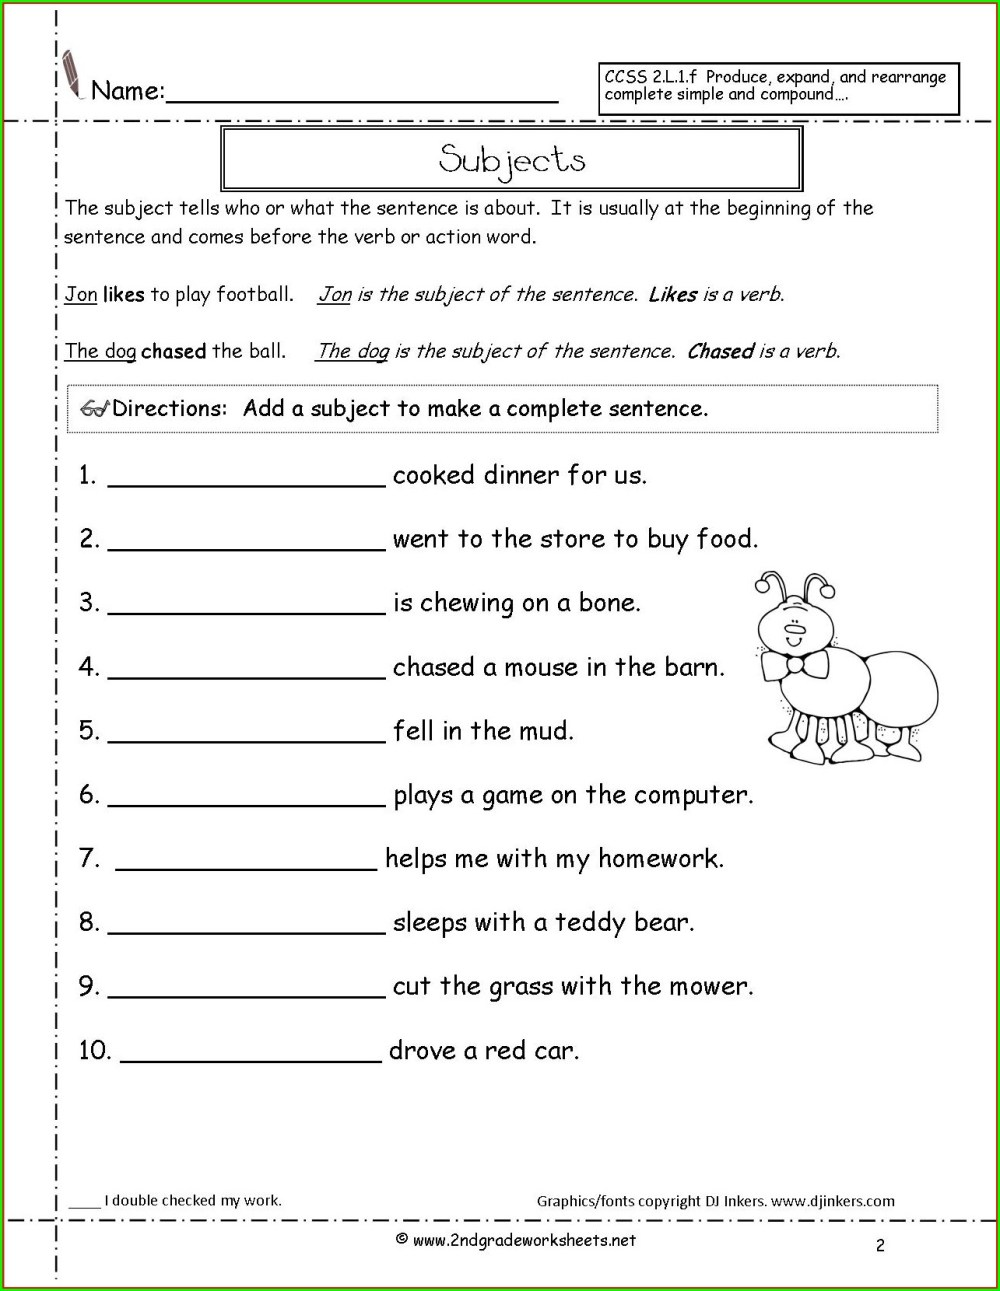 medium resolution of College Sentence Worksheet   Printable Worksheets and Activities for  Teachers